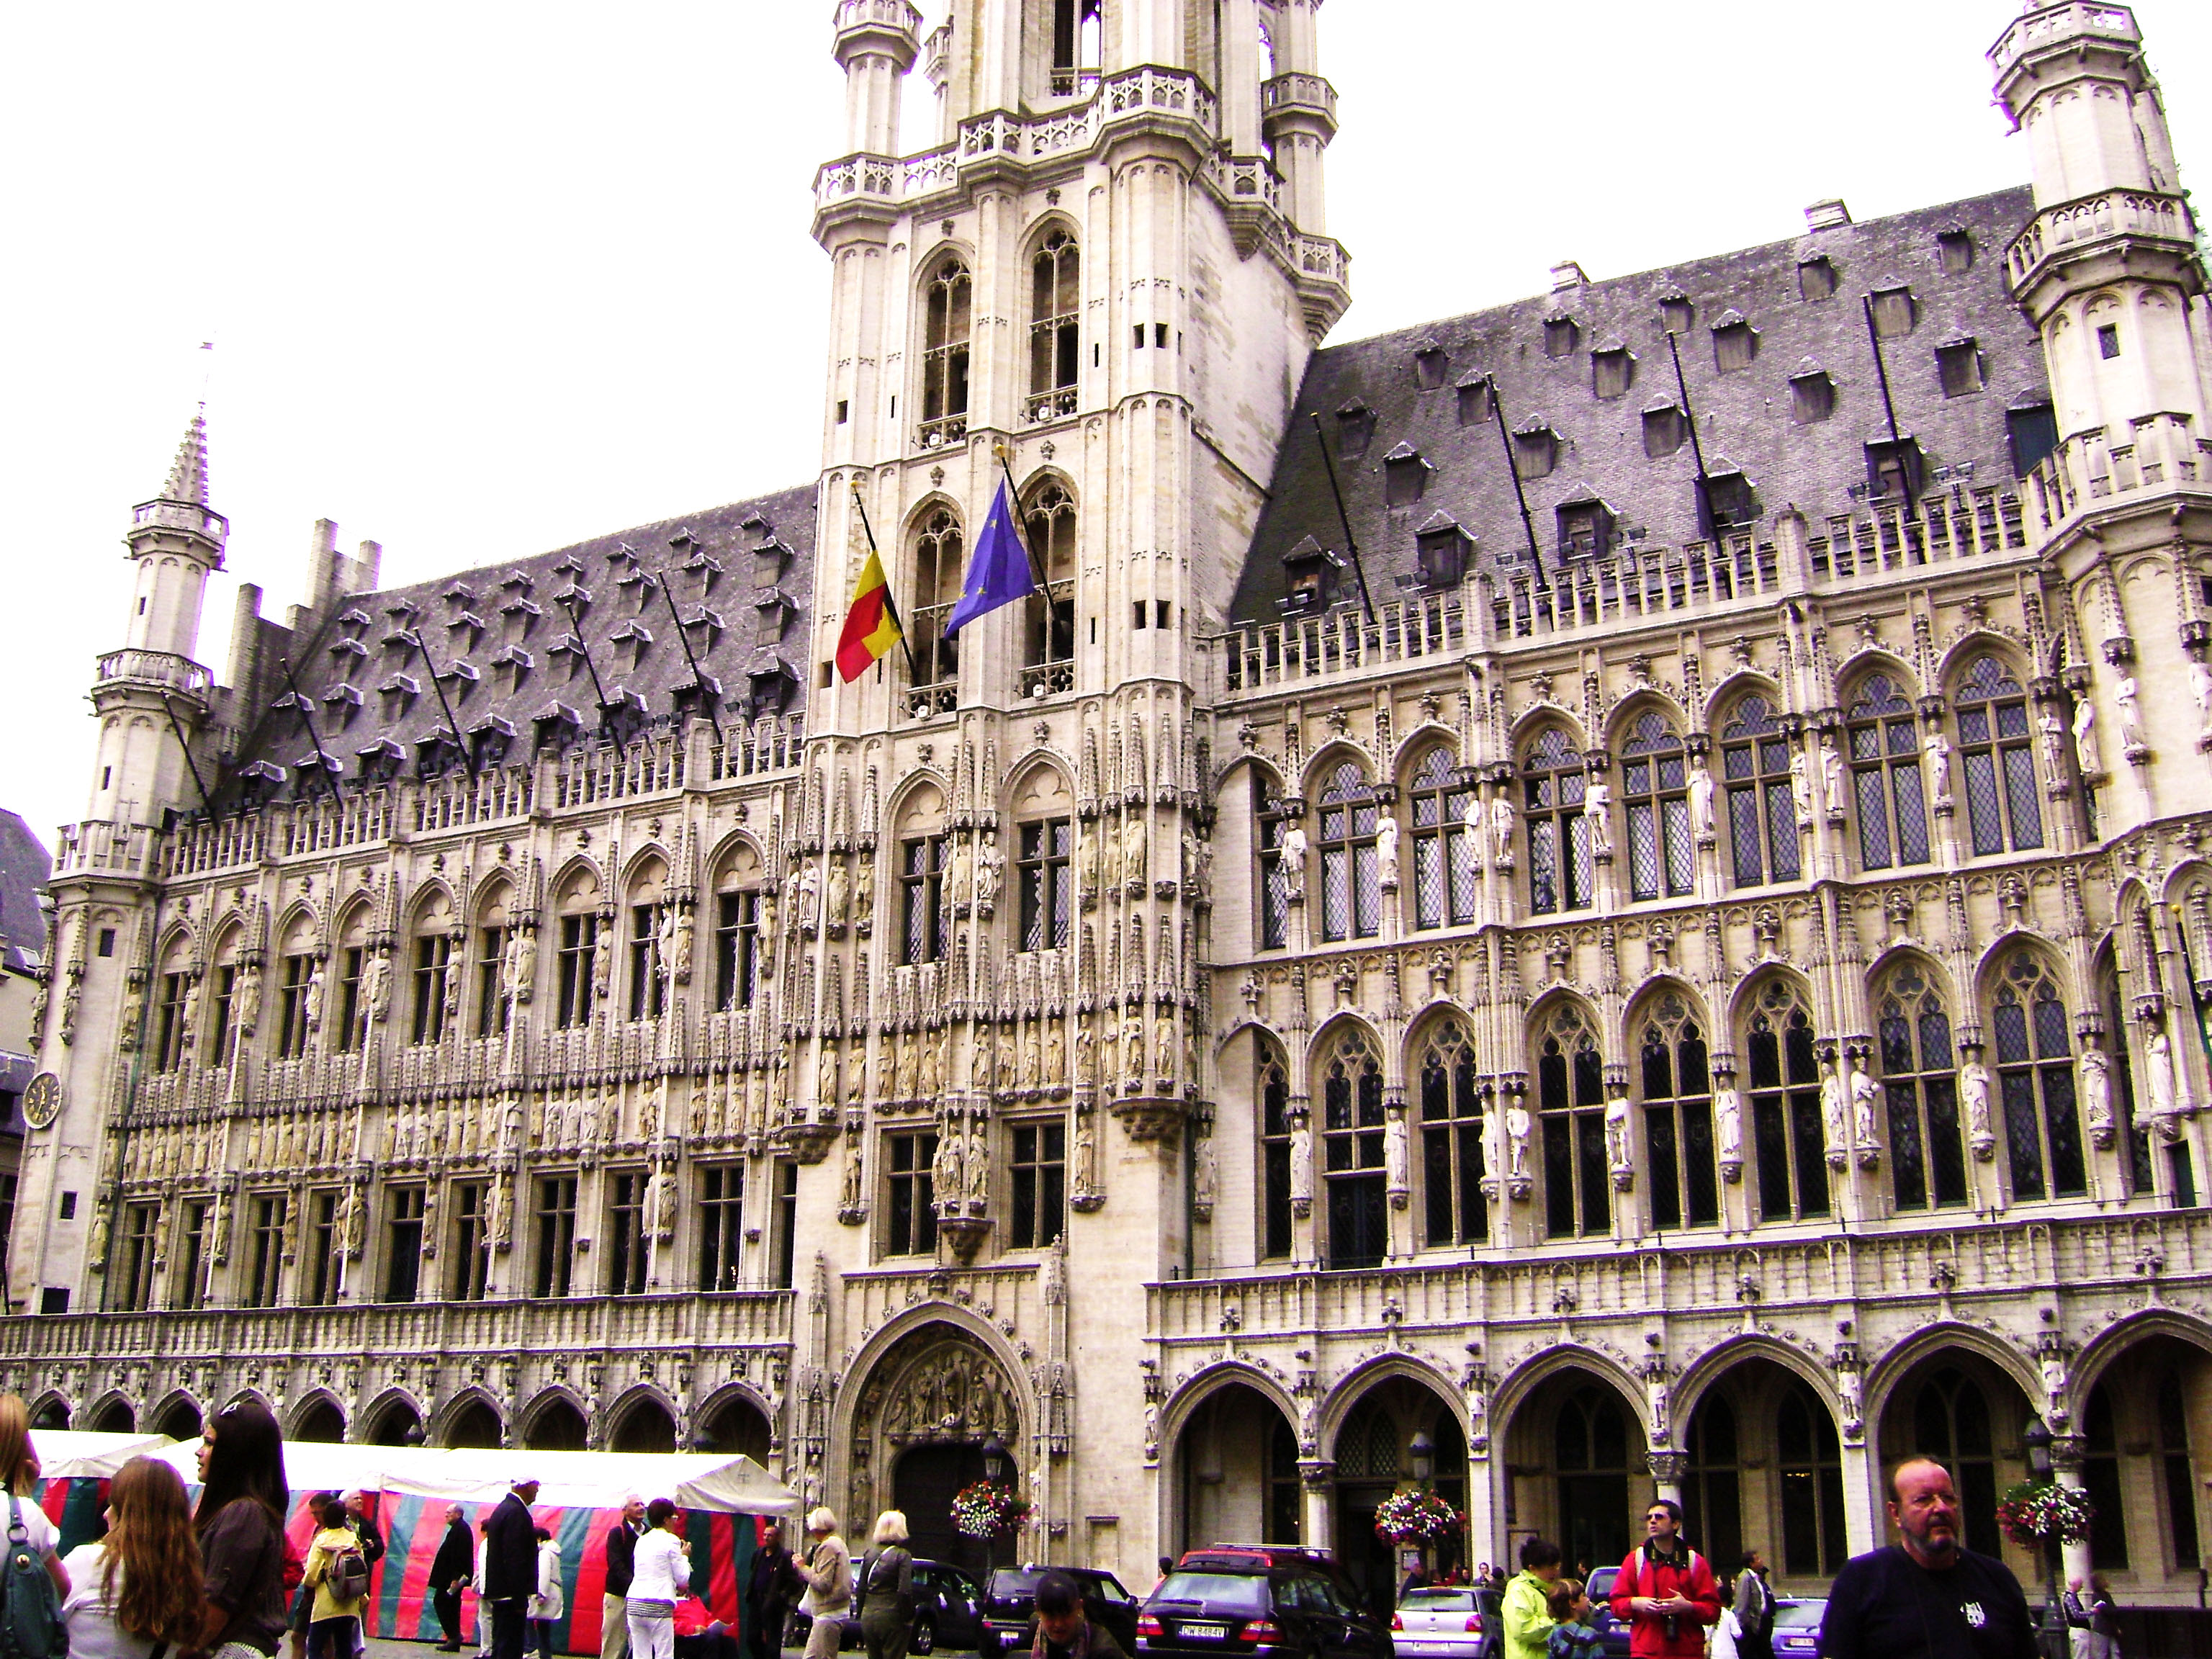 Brussels - Grand Market Square